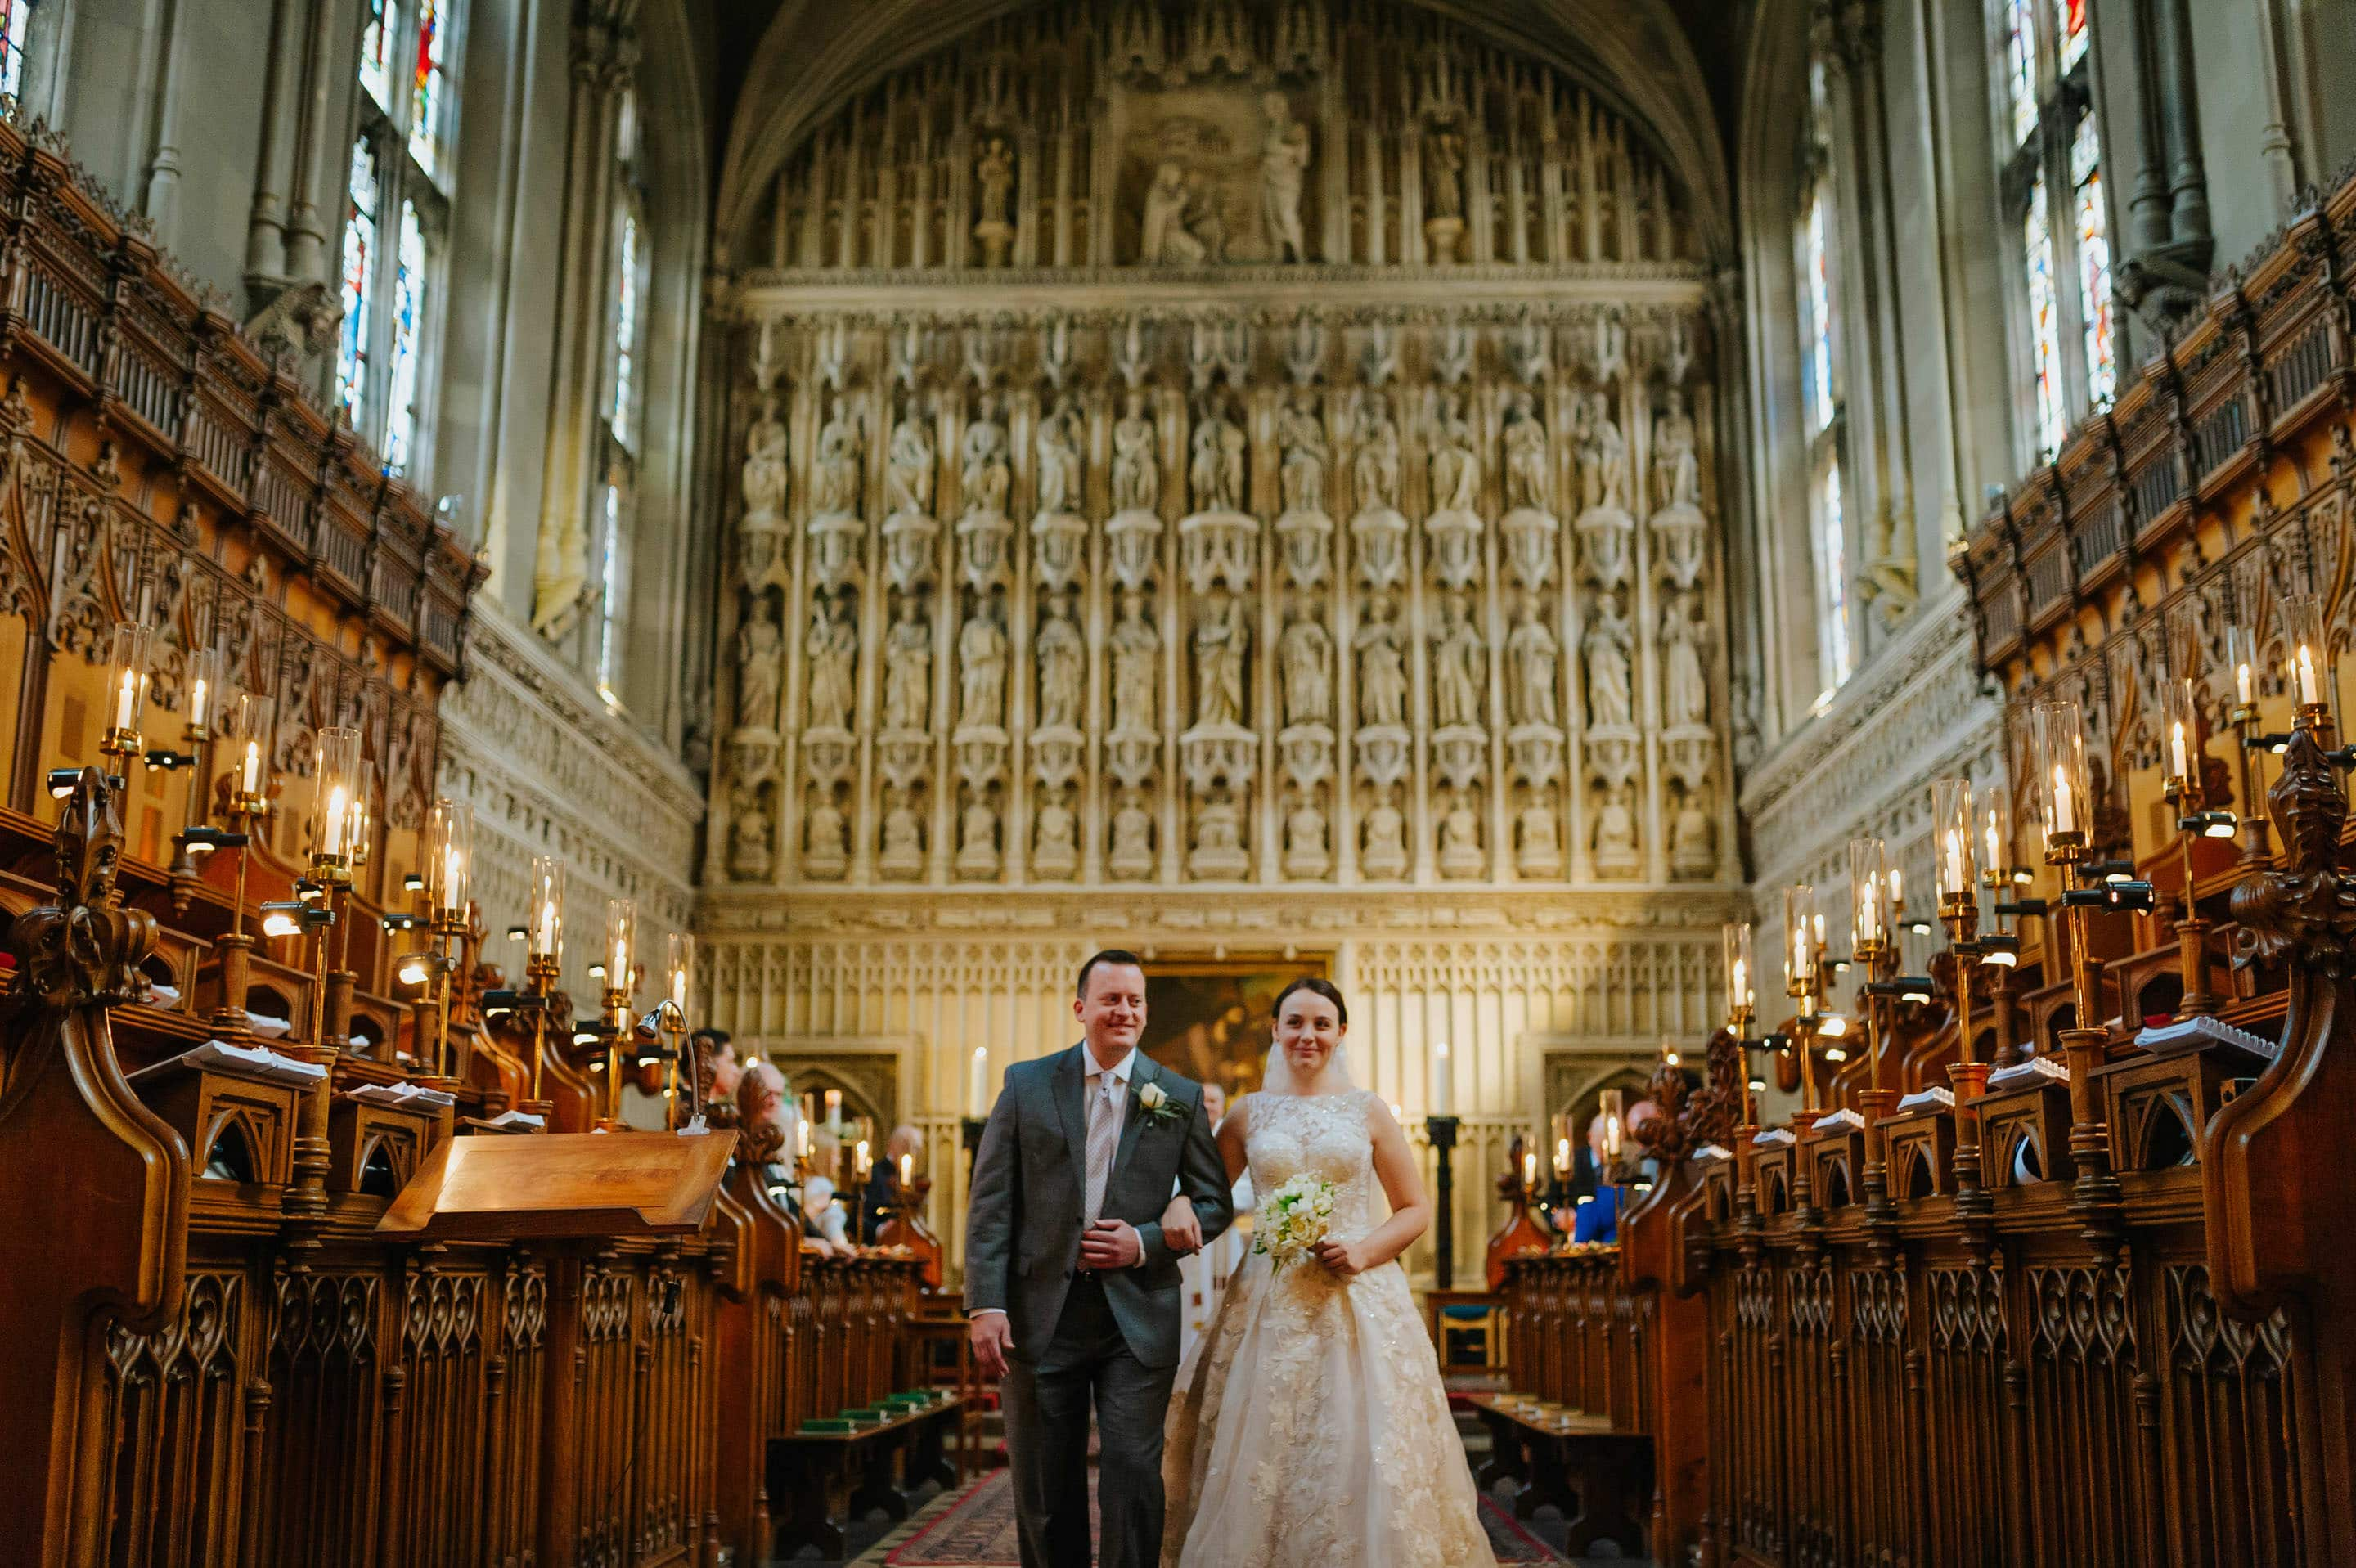 wedding at magdalen college in oxford 33 - Tommie + Virginia | Wedding at Magdalen College in Oxford